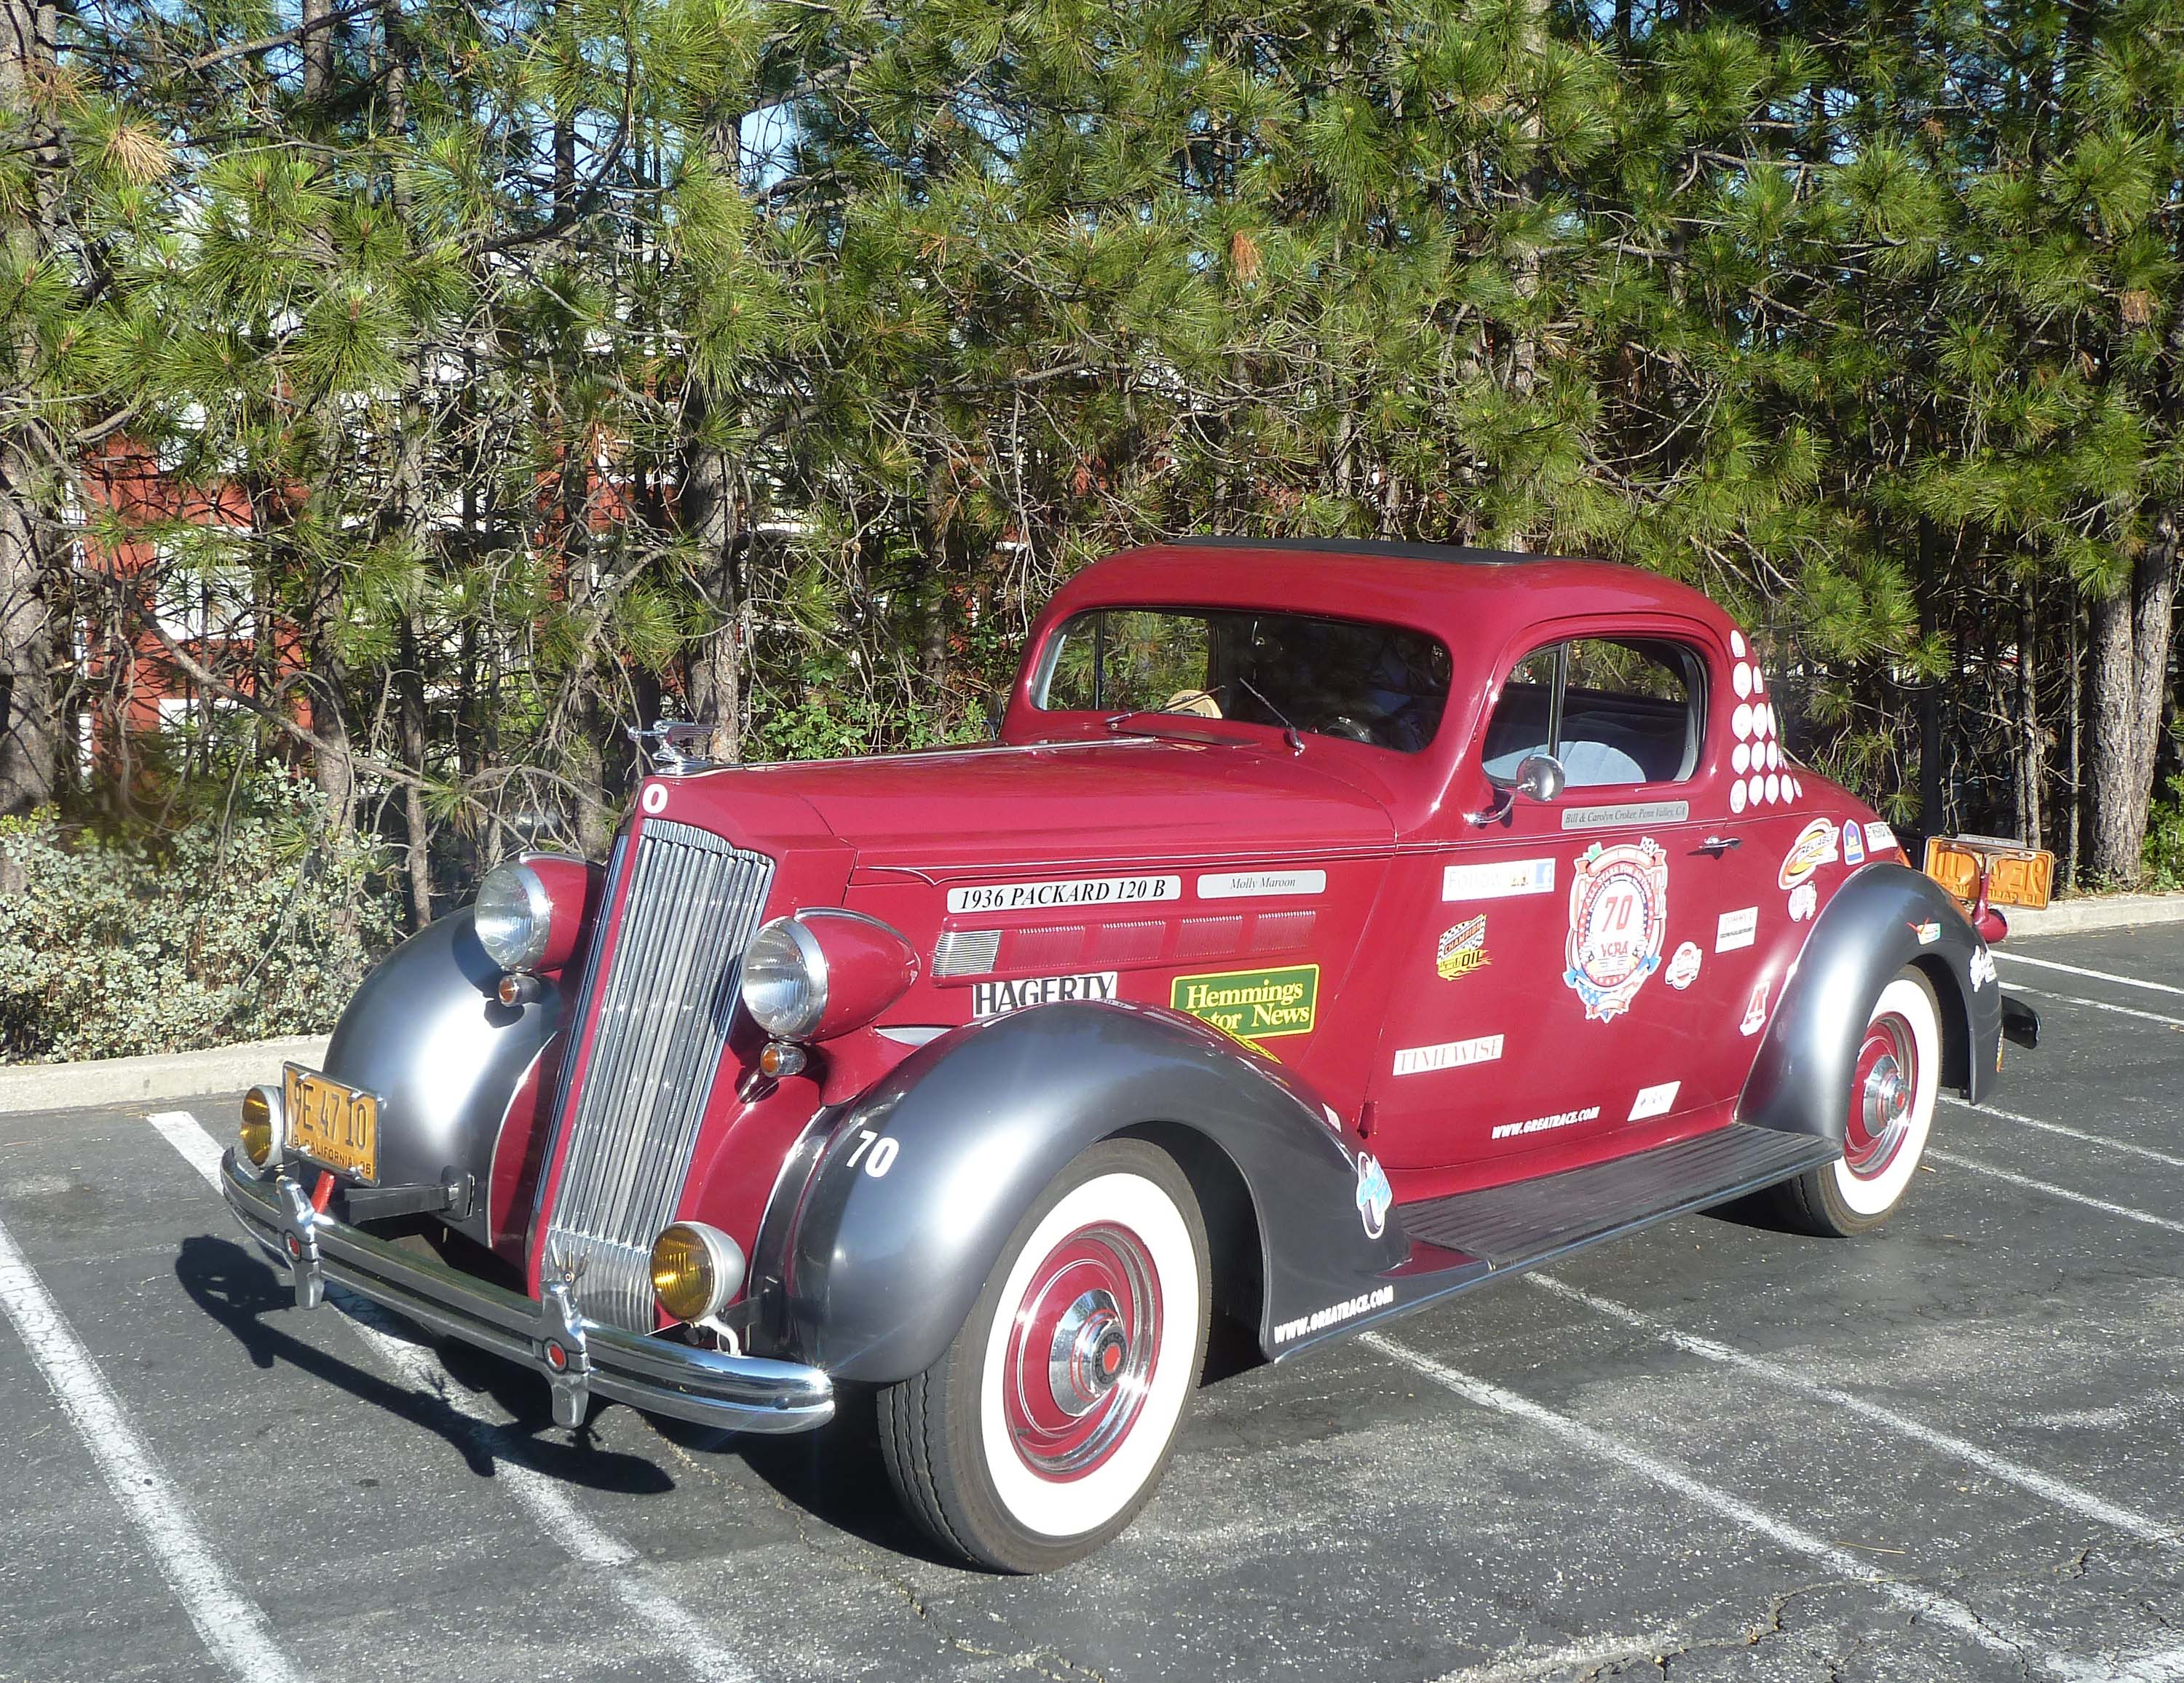 Classic cars and hot rod articles from The Union, Grass ValleyRLCherry